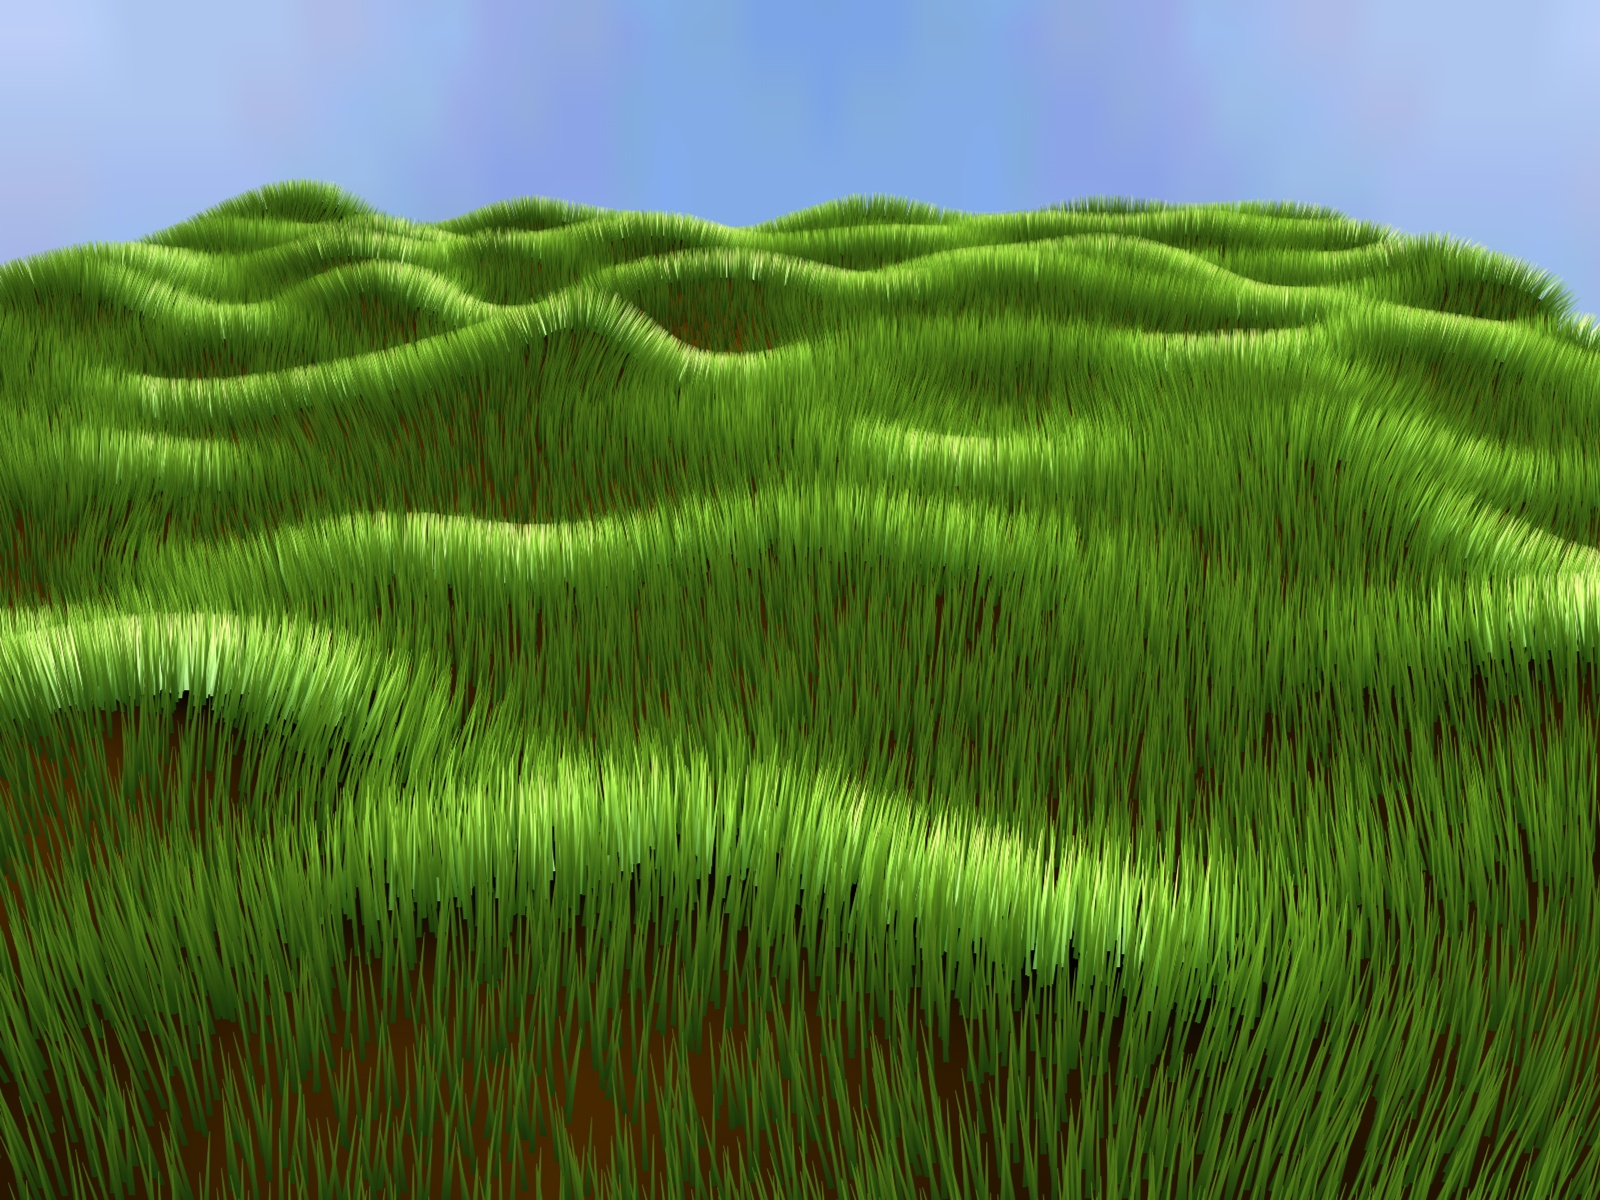 Grassy field by clarince63 on deviantart grassy field by clarince63 grassy field by clarince63 voltagebd Images